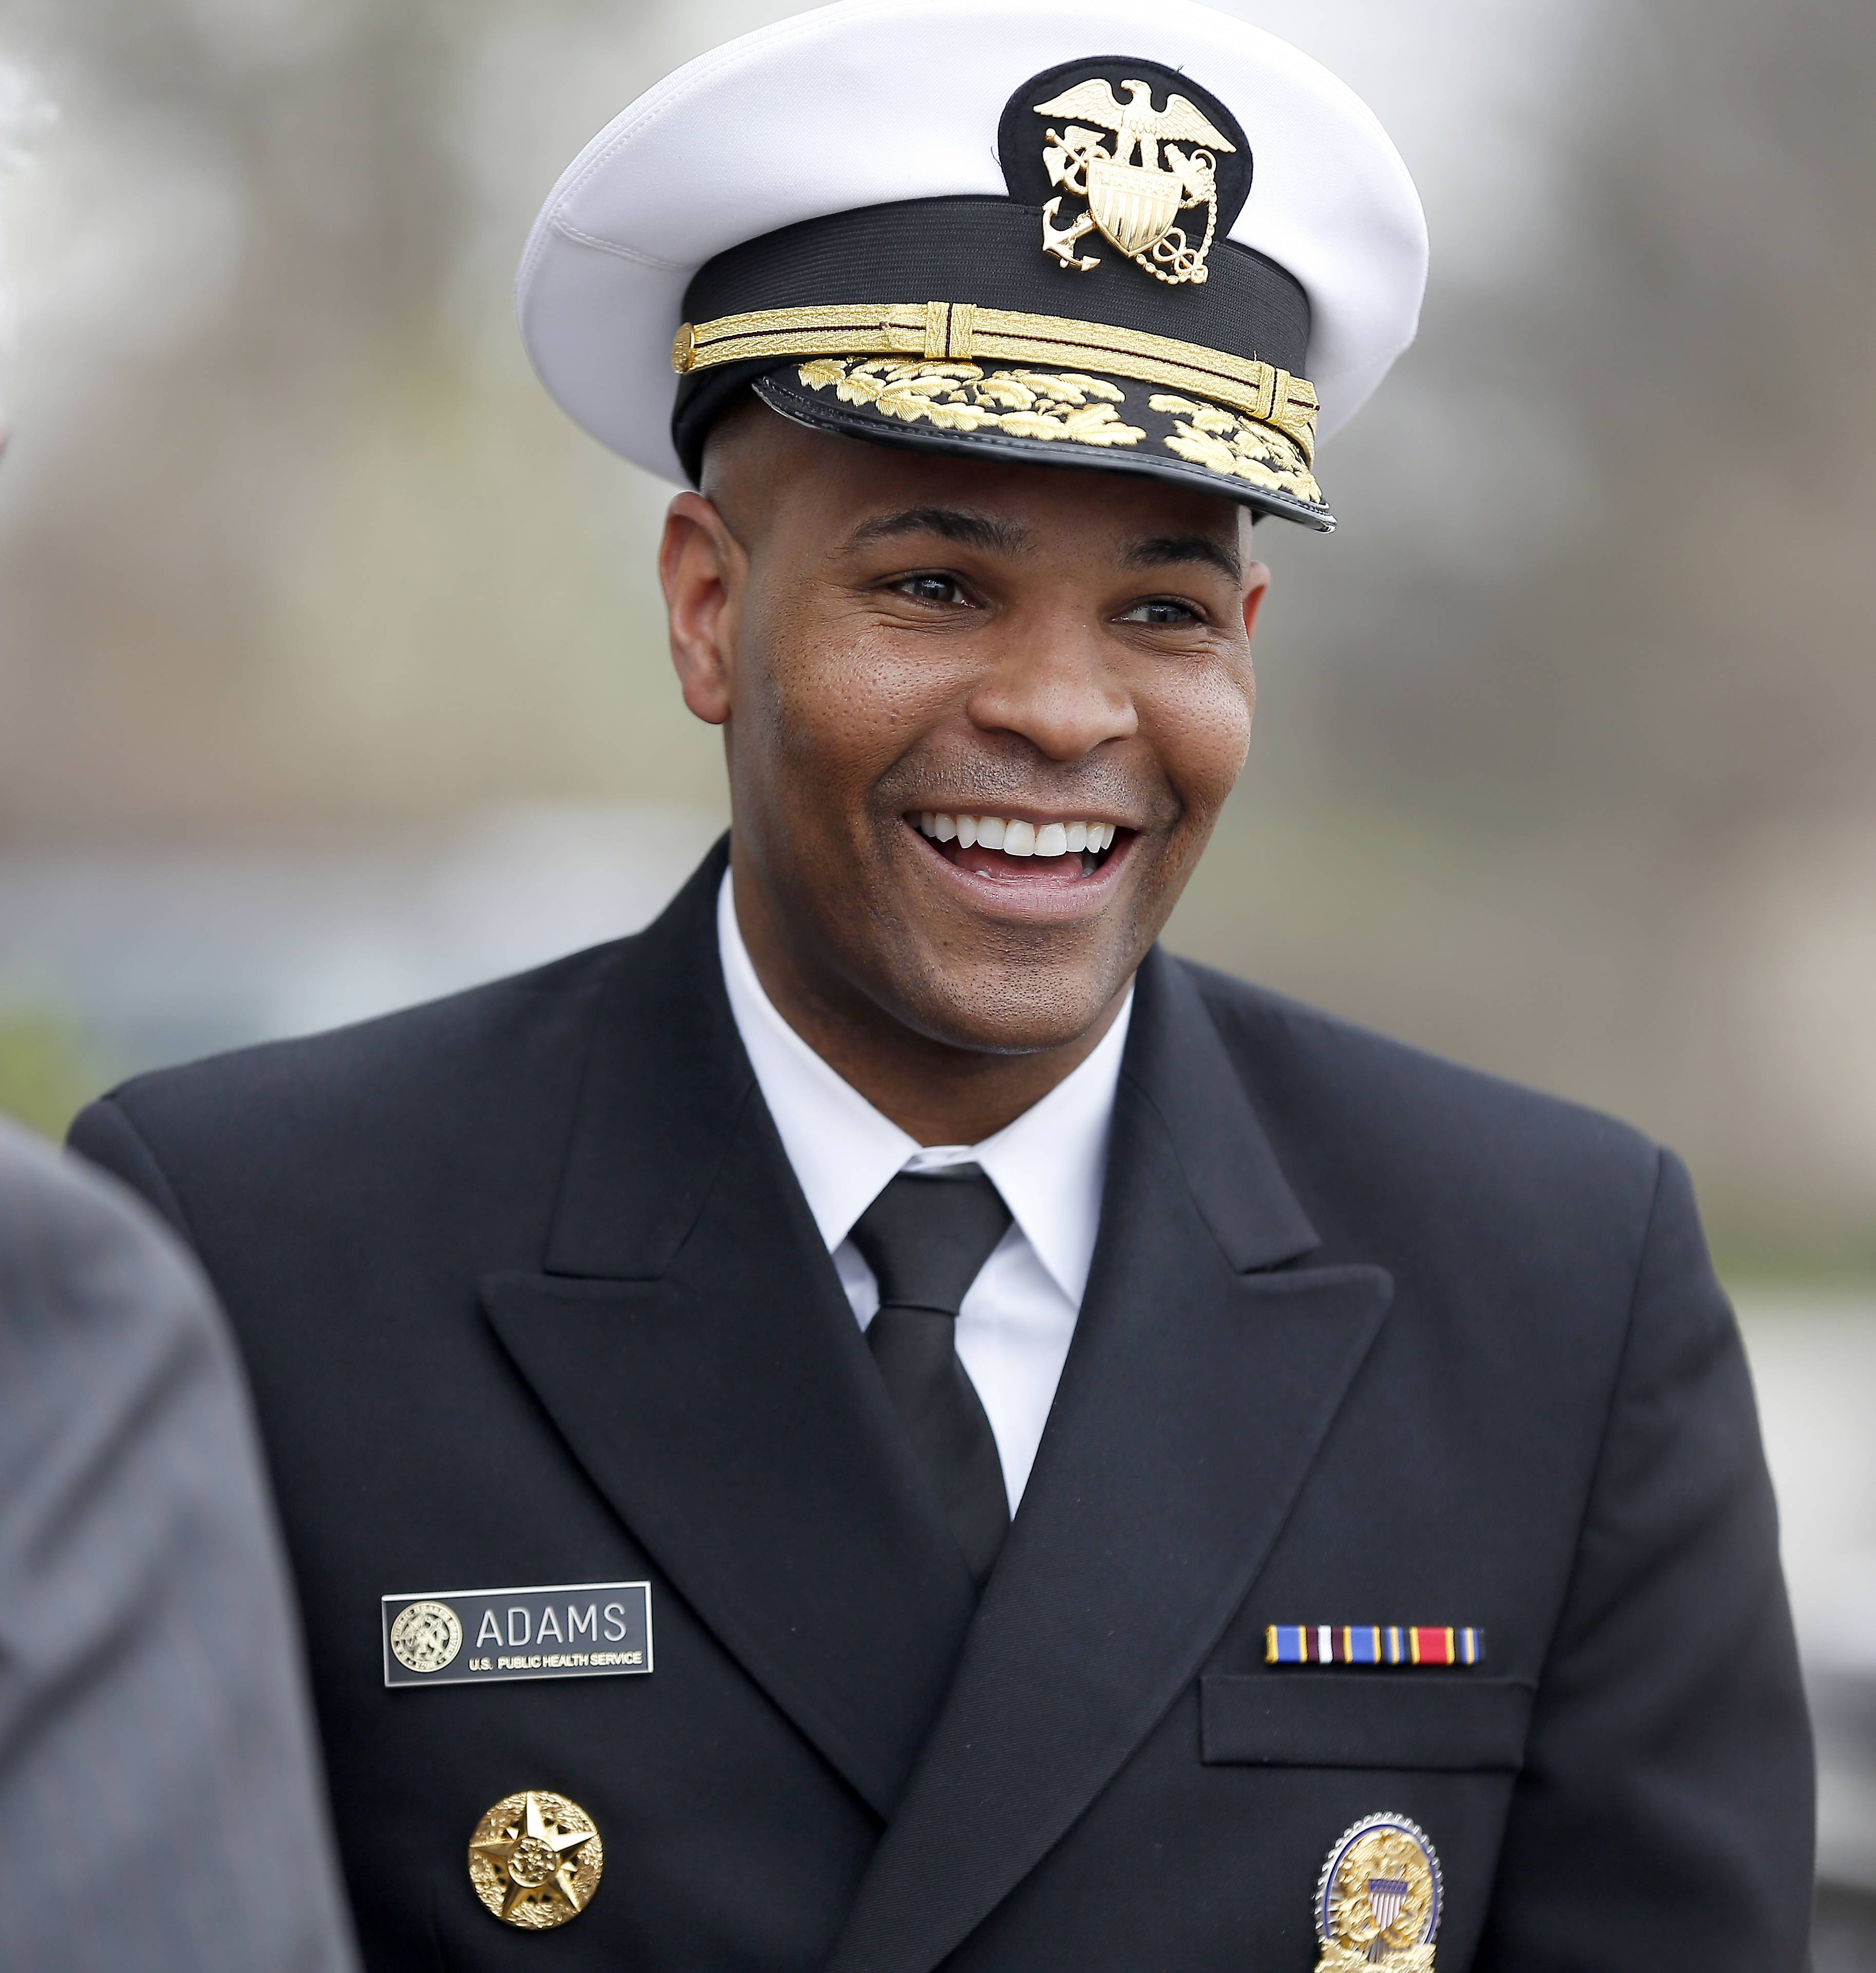 Surgeon General Dr. Jerome Adams says he issued an advisory to emphasize the importance of the opioid overdose reversal drug naloxone